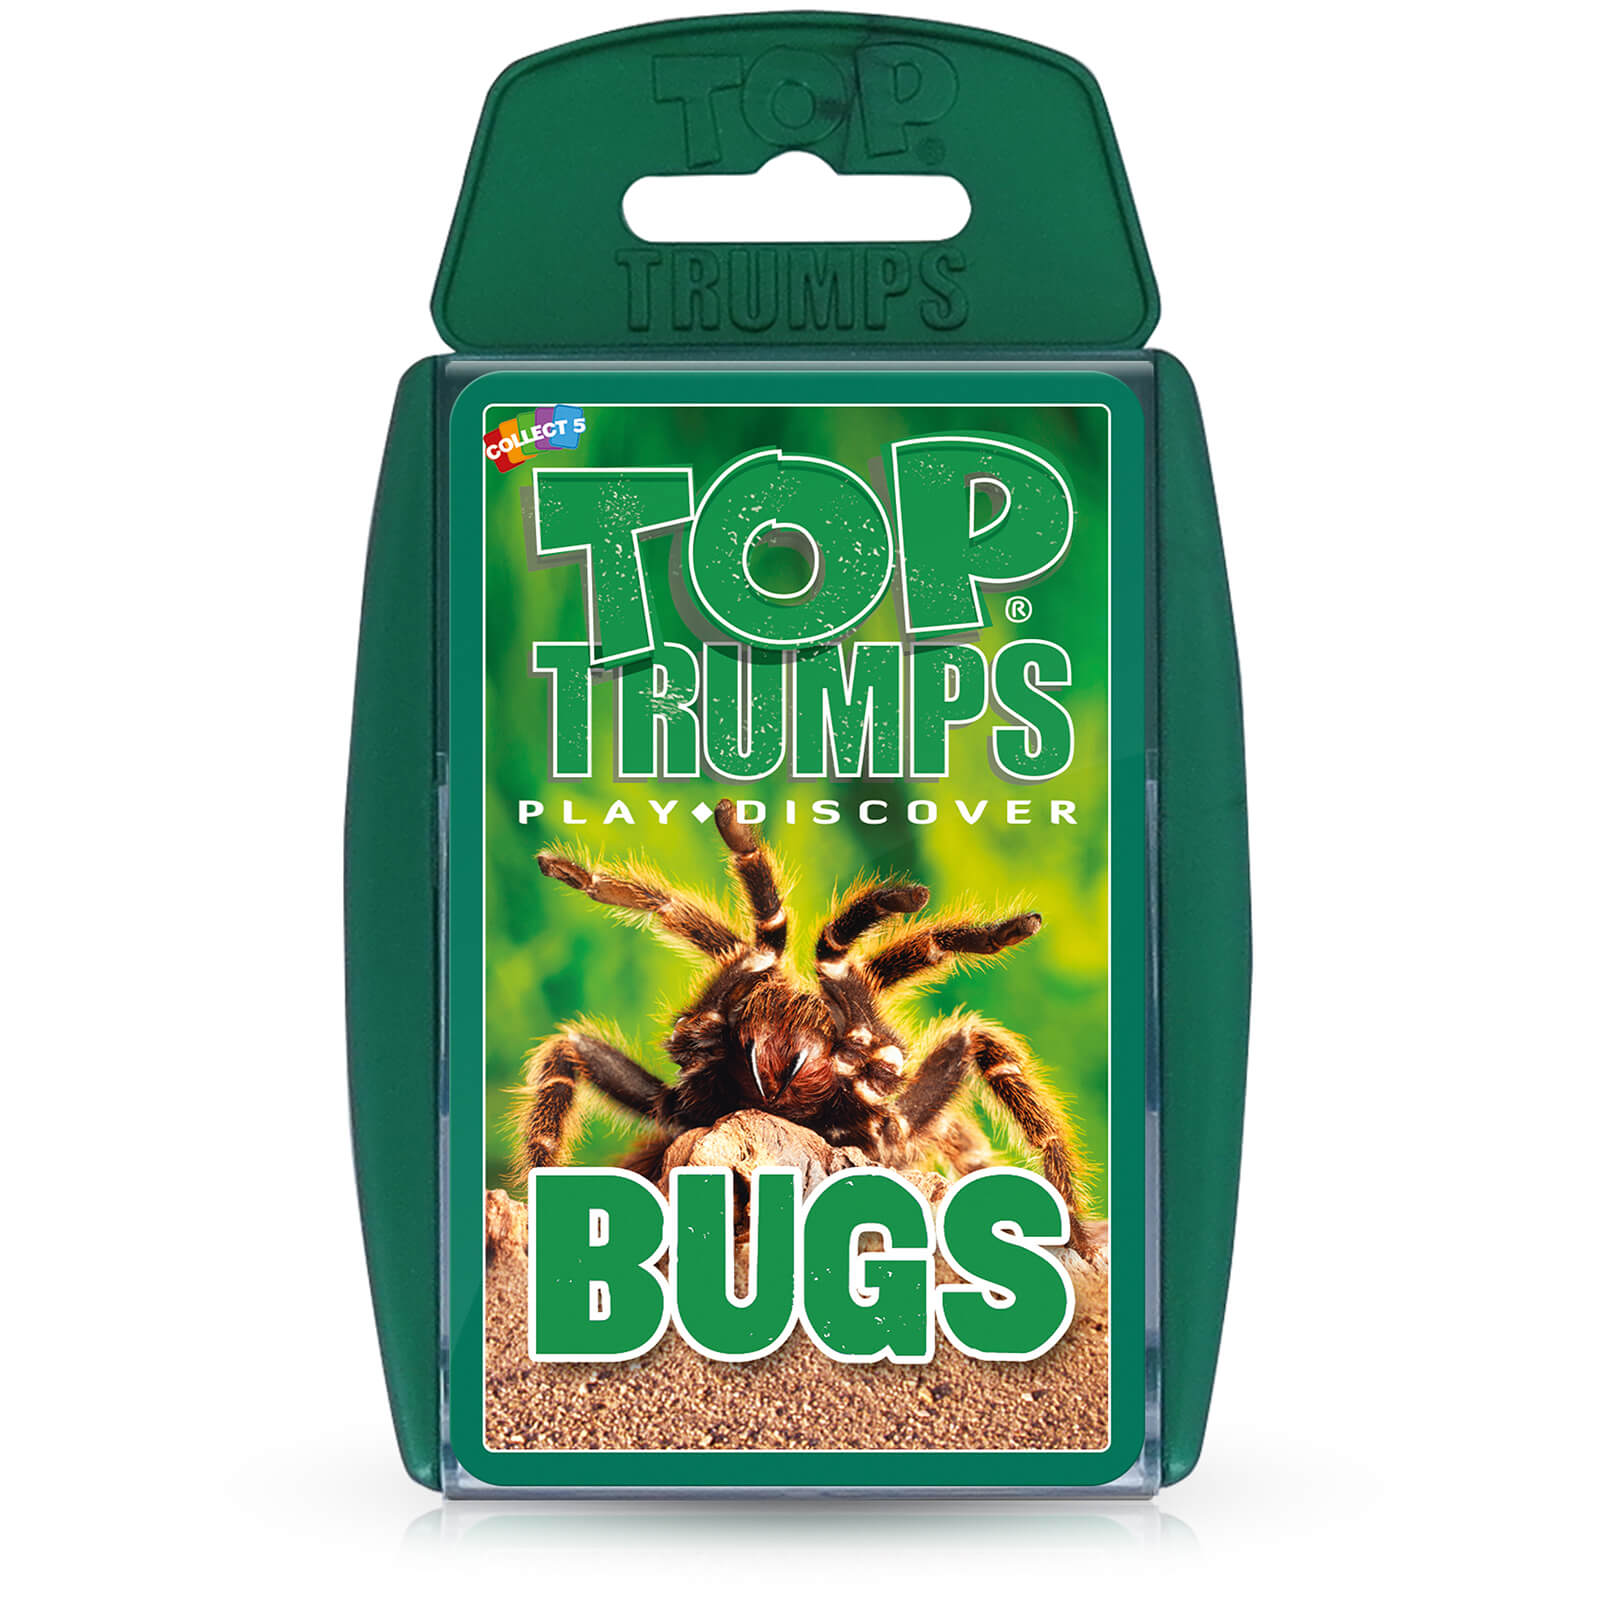 Image of Top Trumps Card Game - Bugs Edition